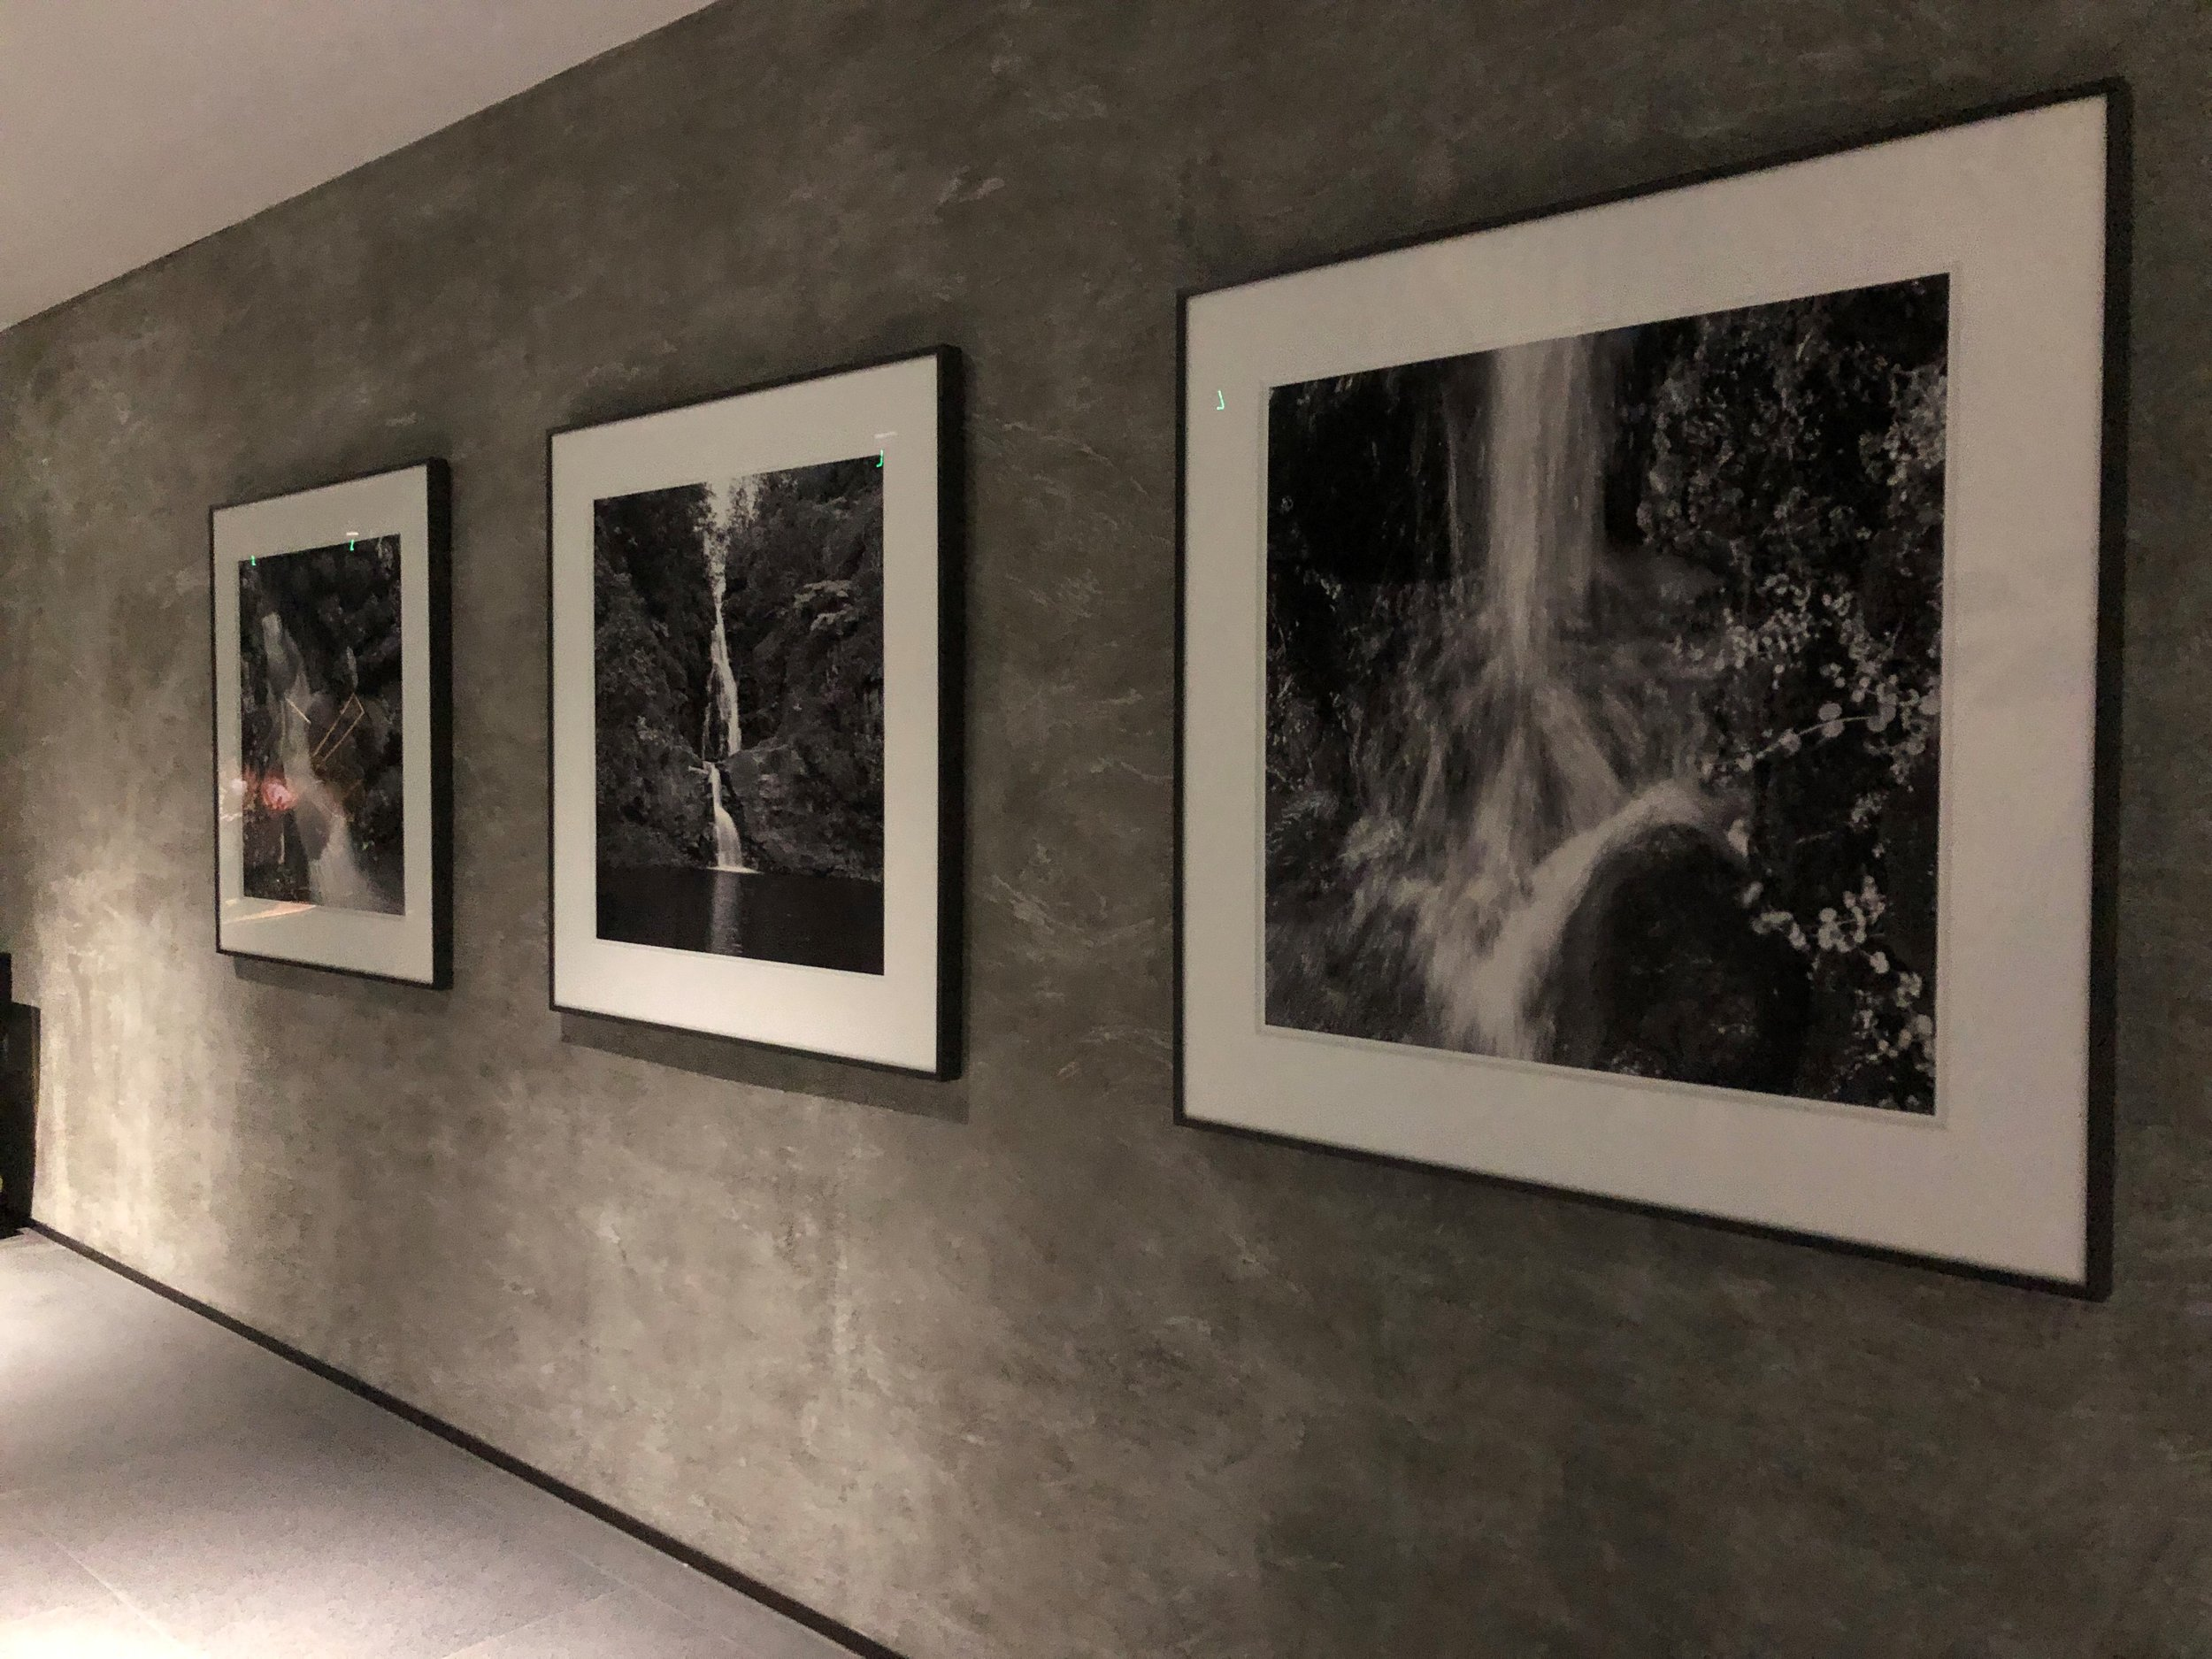 Art by local photographer Franco Salmoiraghi displayed in the elevator foyer at Waiea.